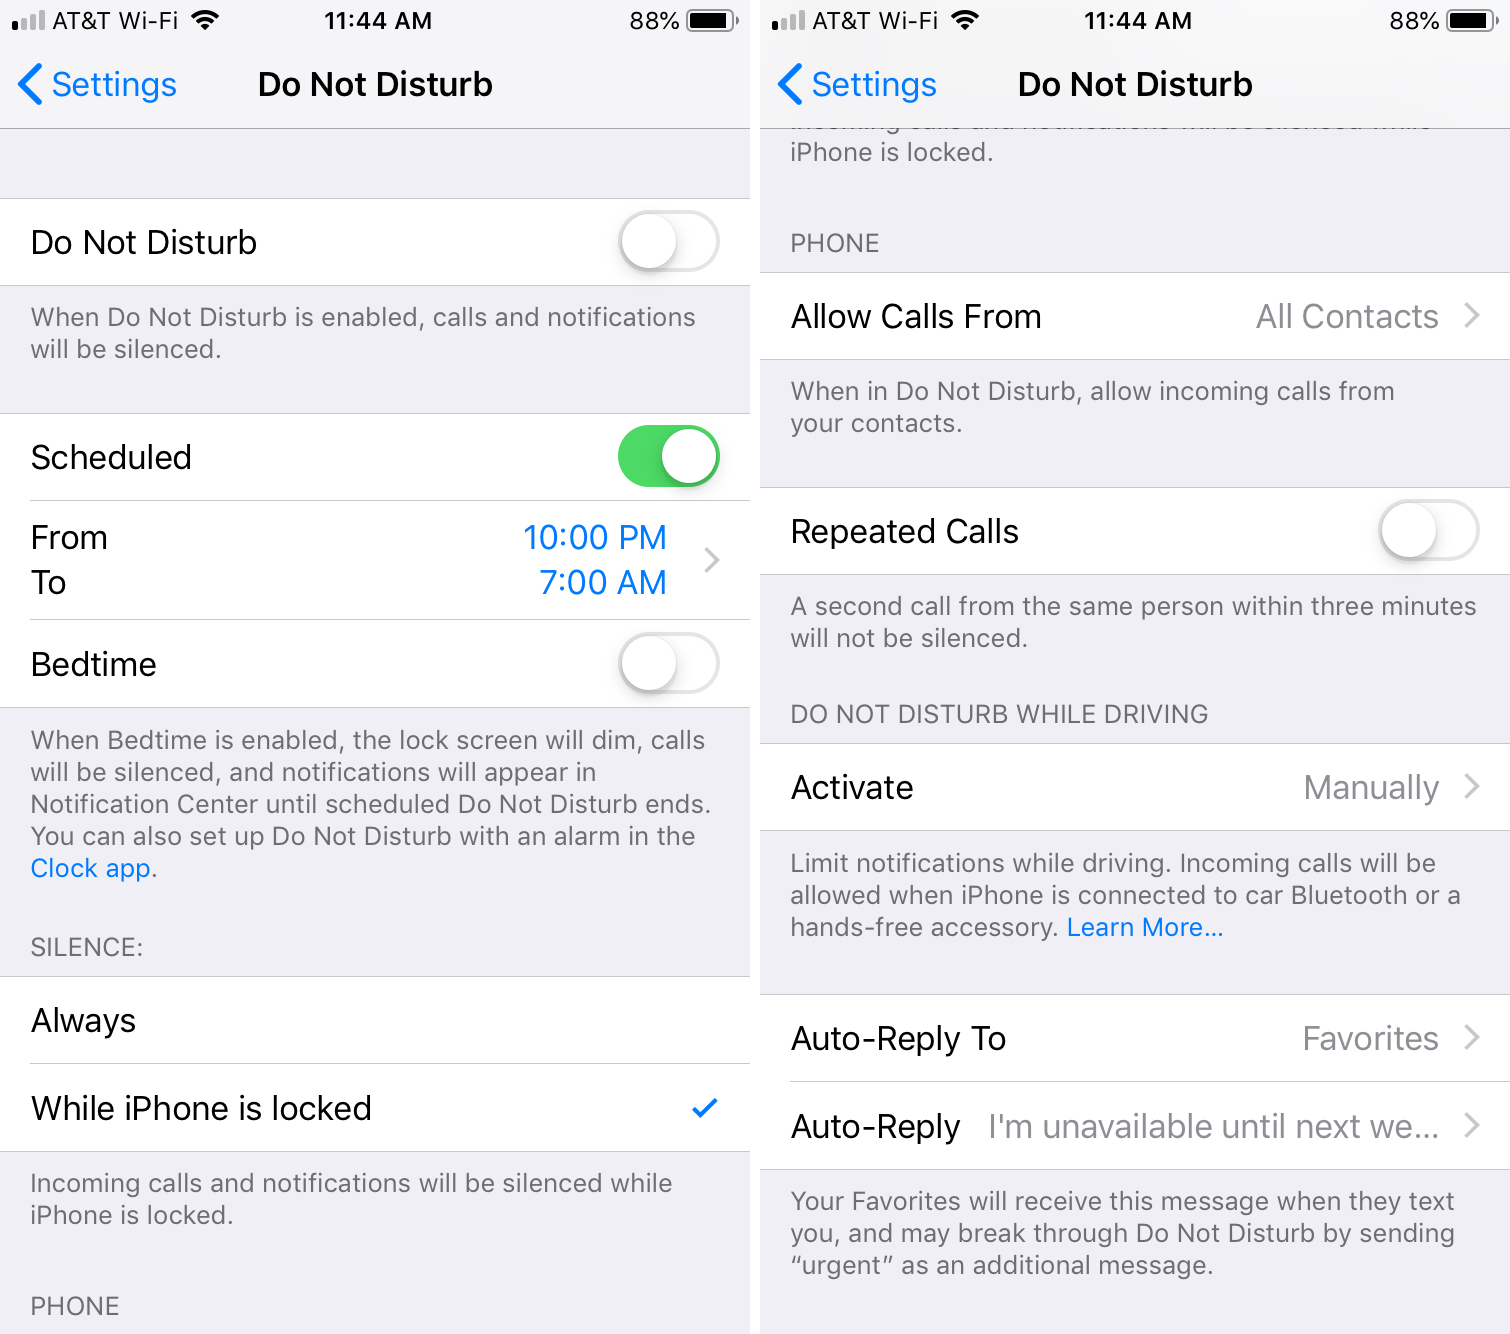 Do Not Disturb Options on iPhone